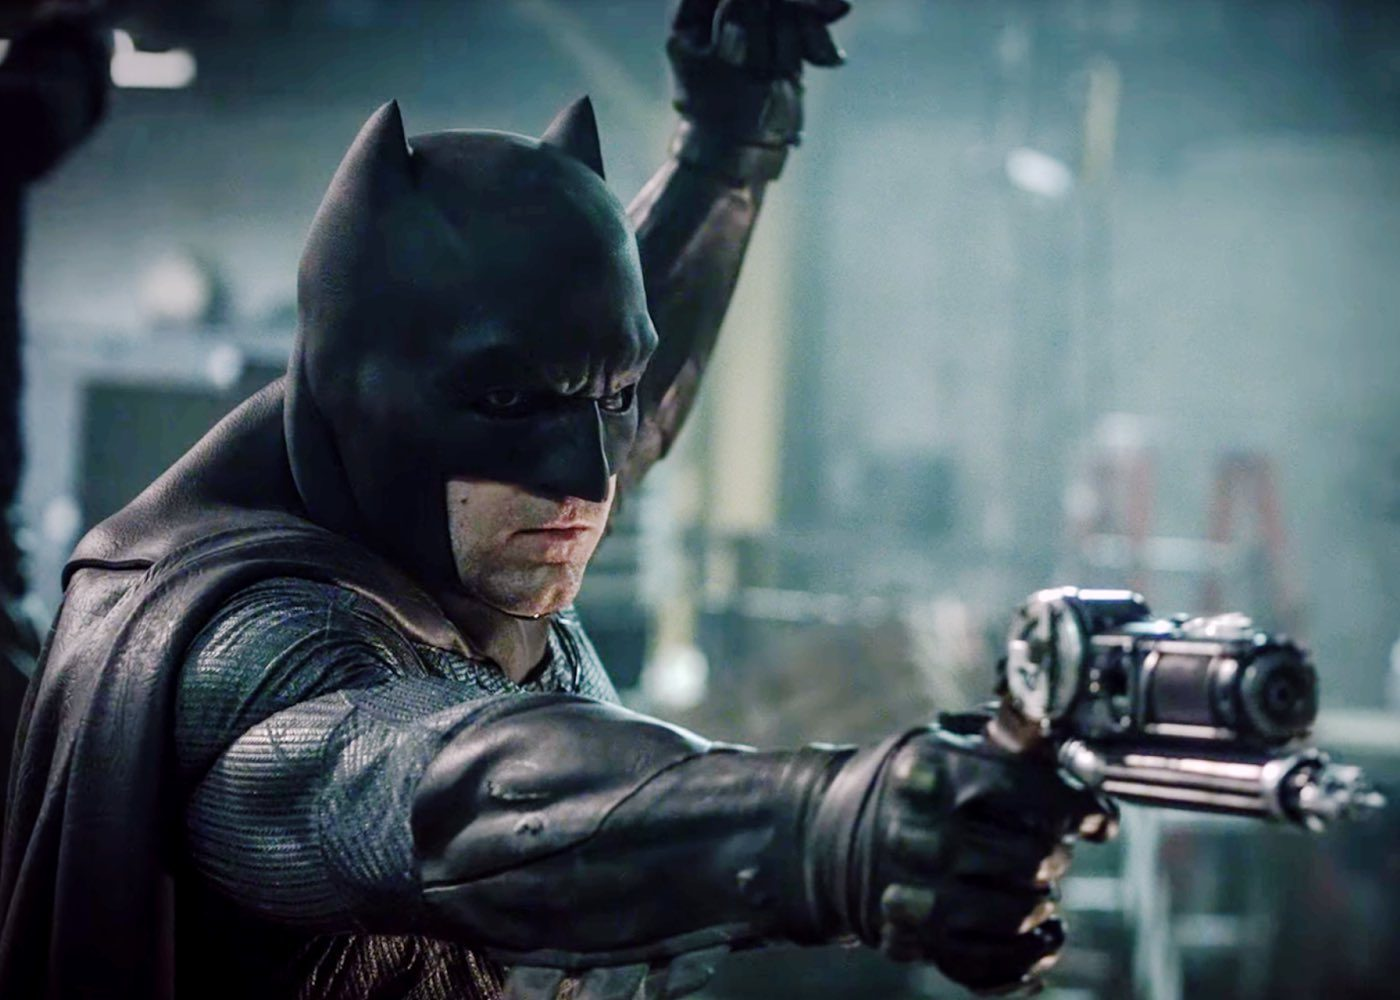 Rumor: The Batman Solo Movie Likely Coming Out in 2021